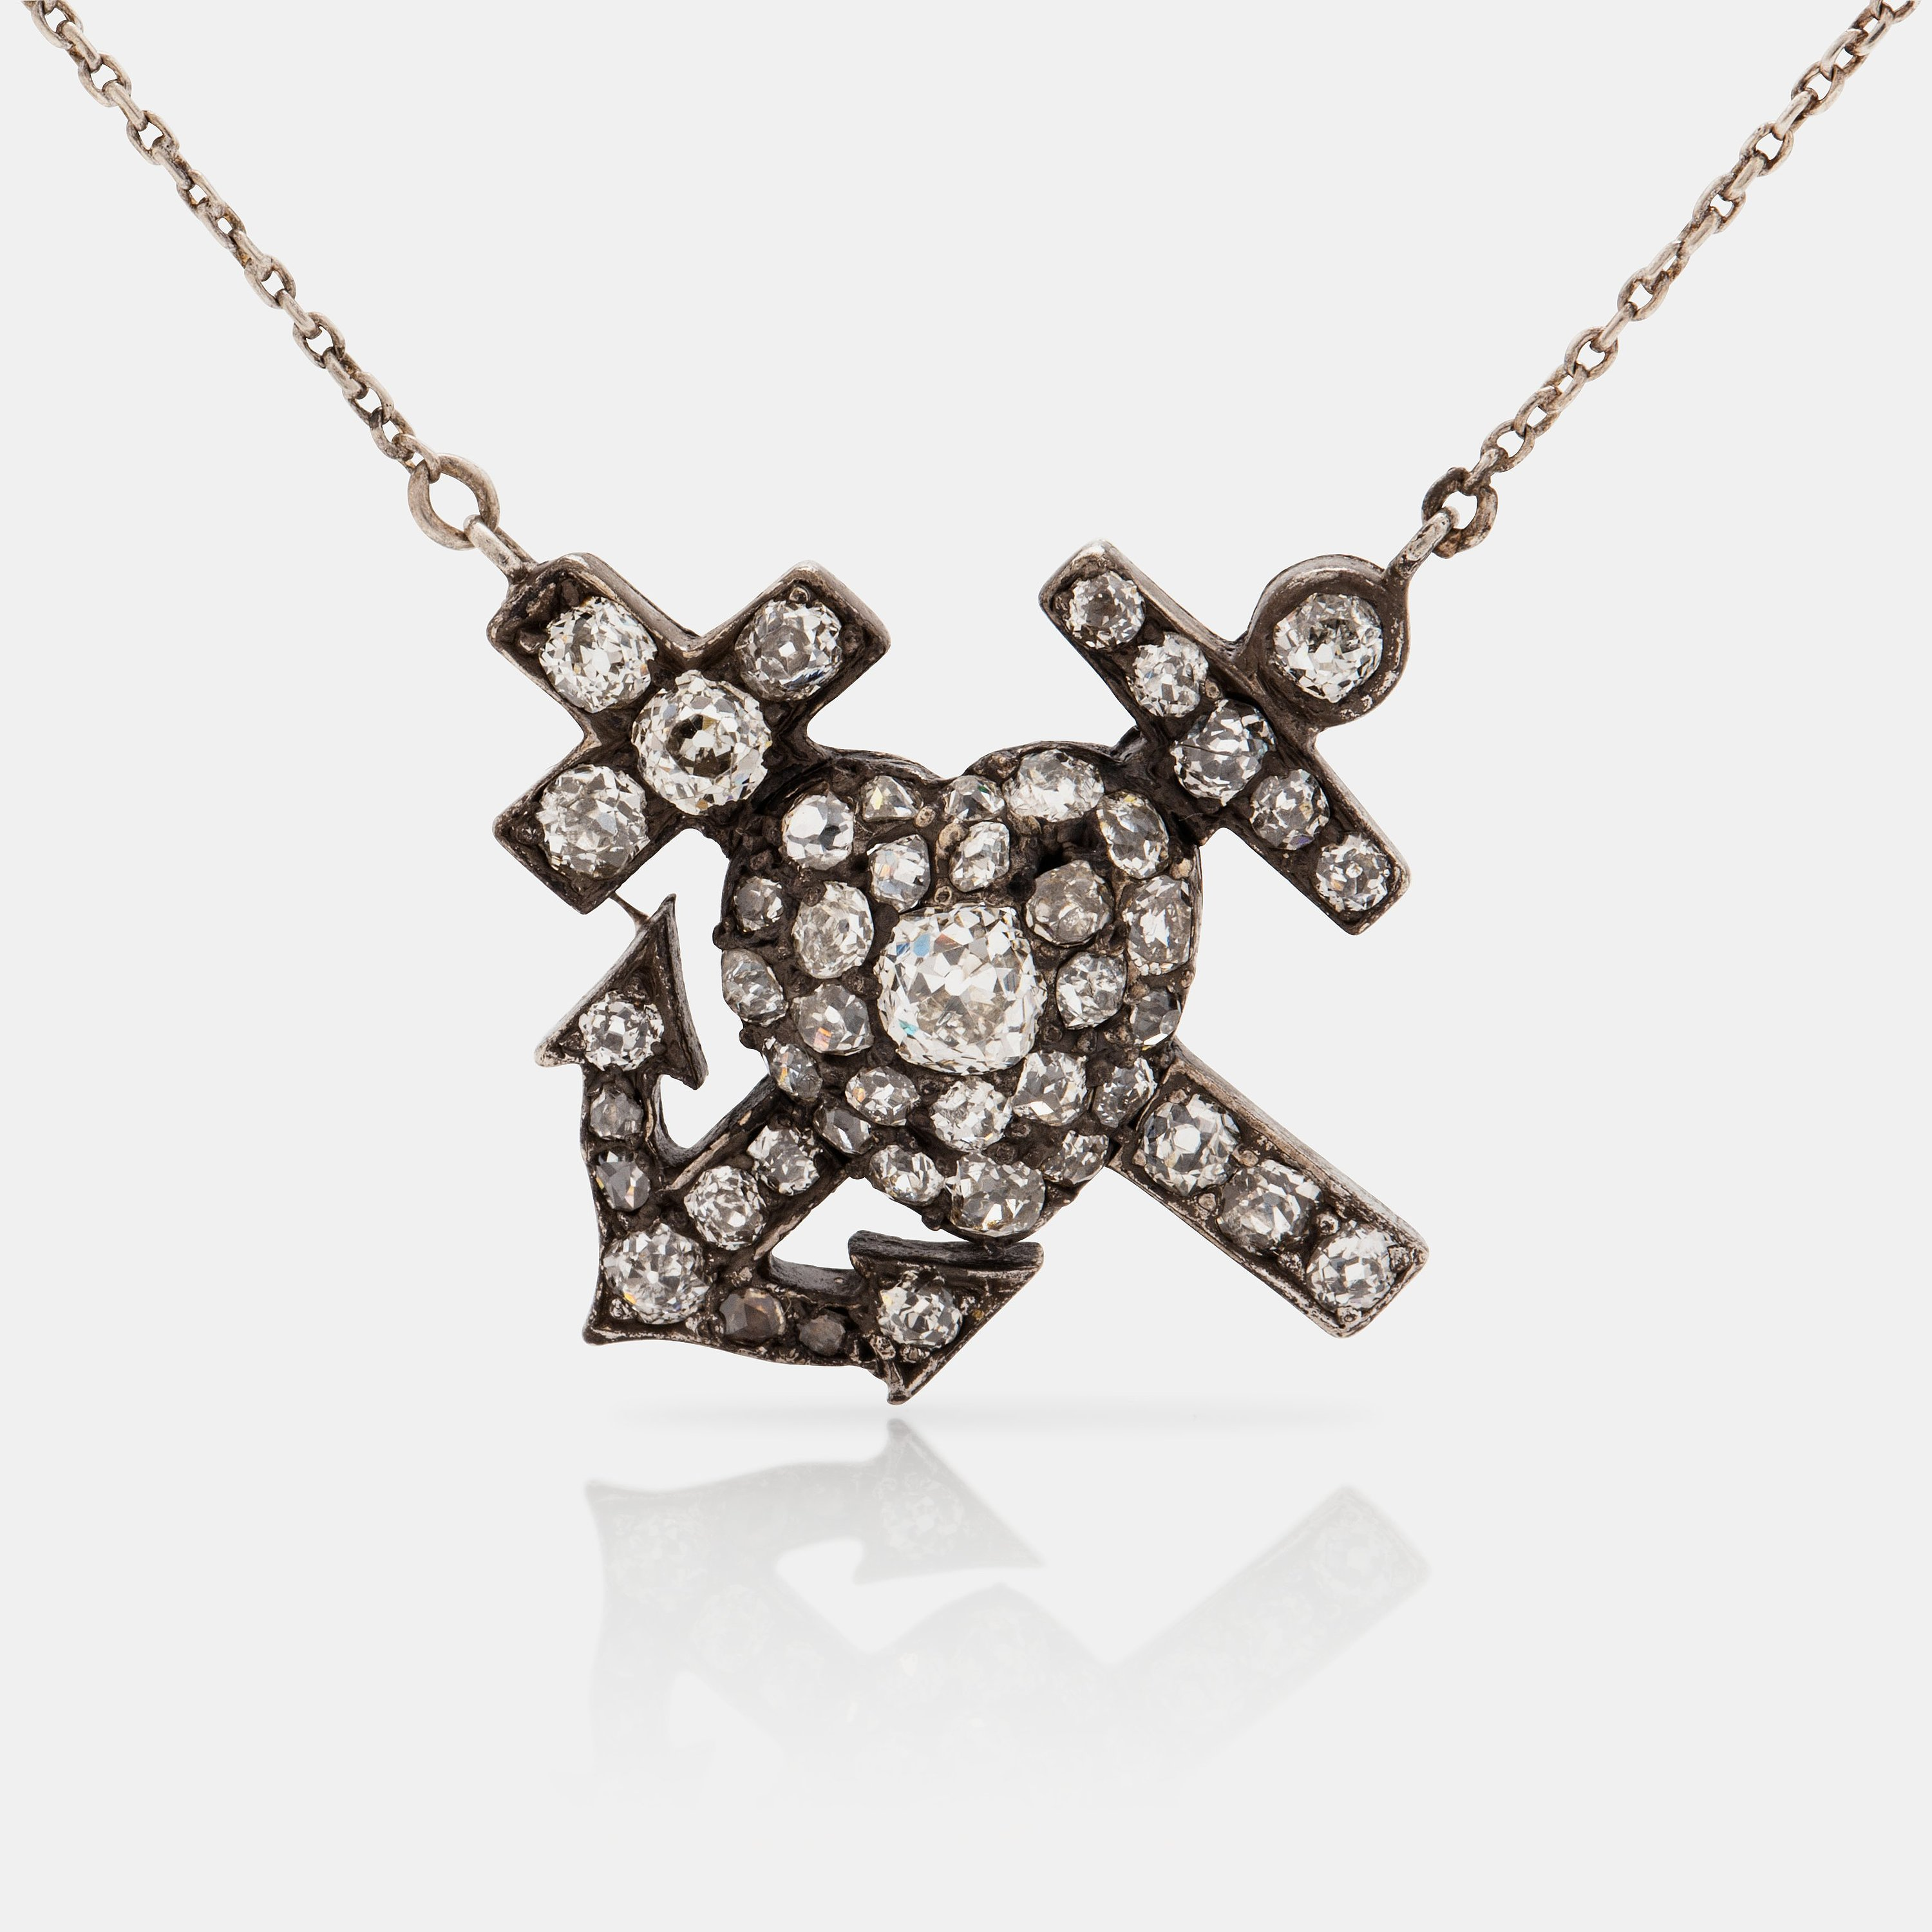 A Necklace With Symbols For Faith Hope And Love Set With Old Cut